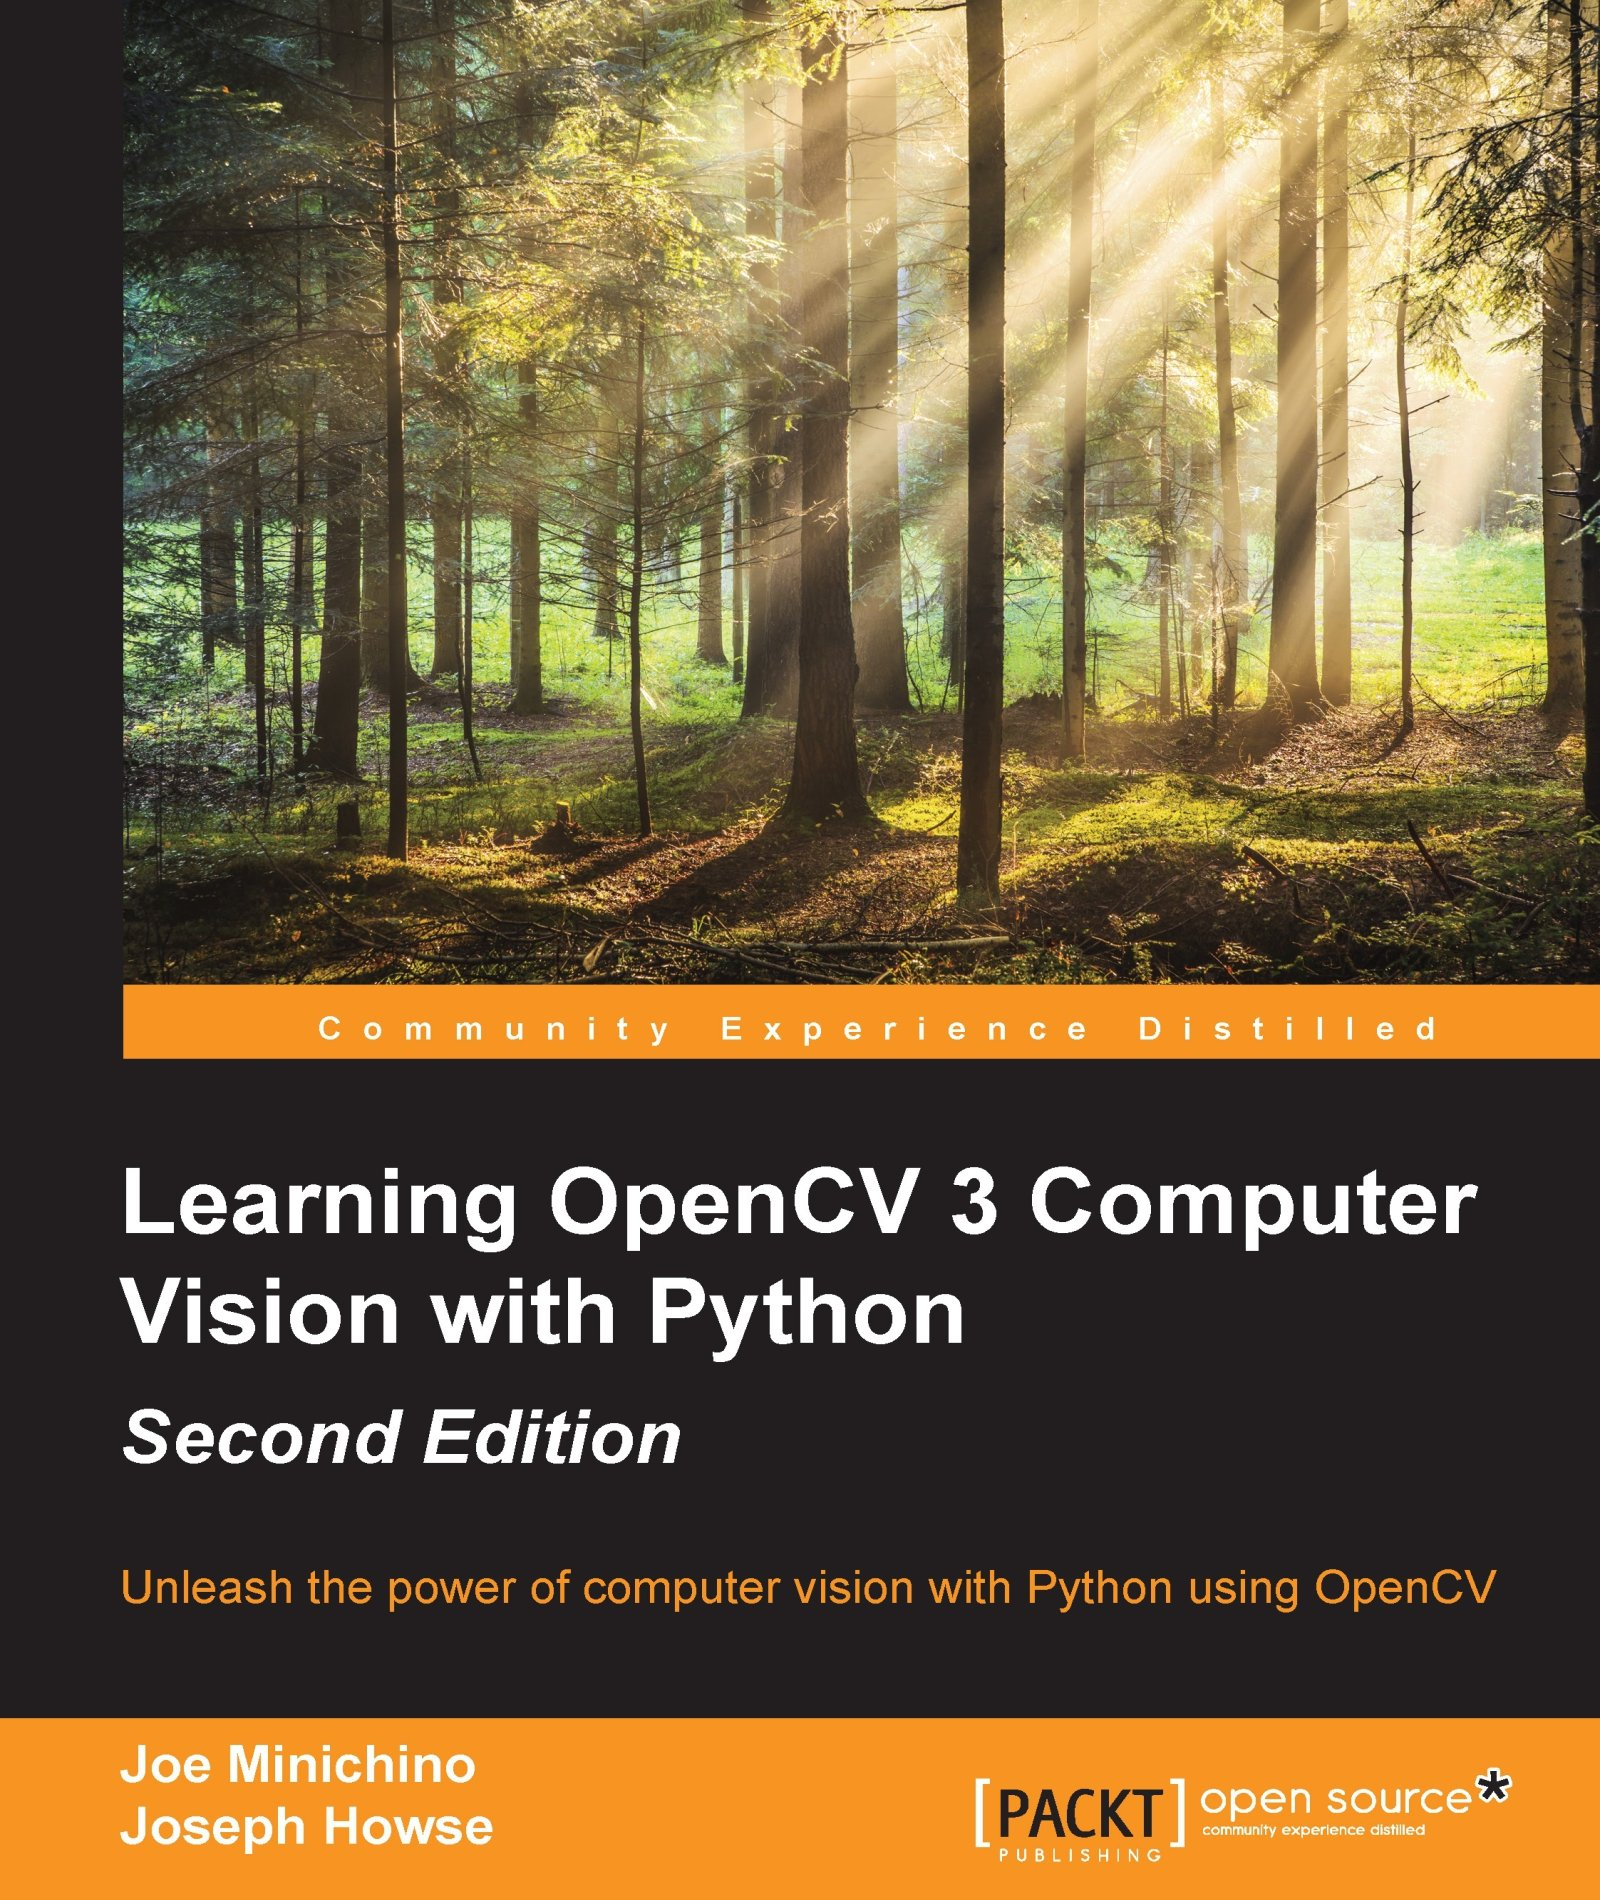 Learning OpenCV 3 Computer Vision with Python - Joe Minichino, Joseph Howse